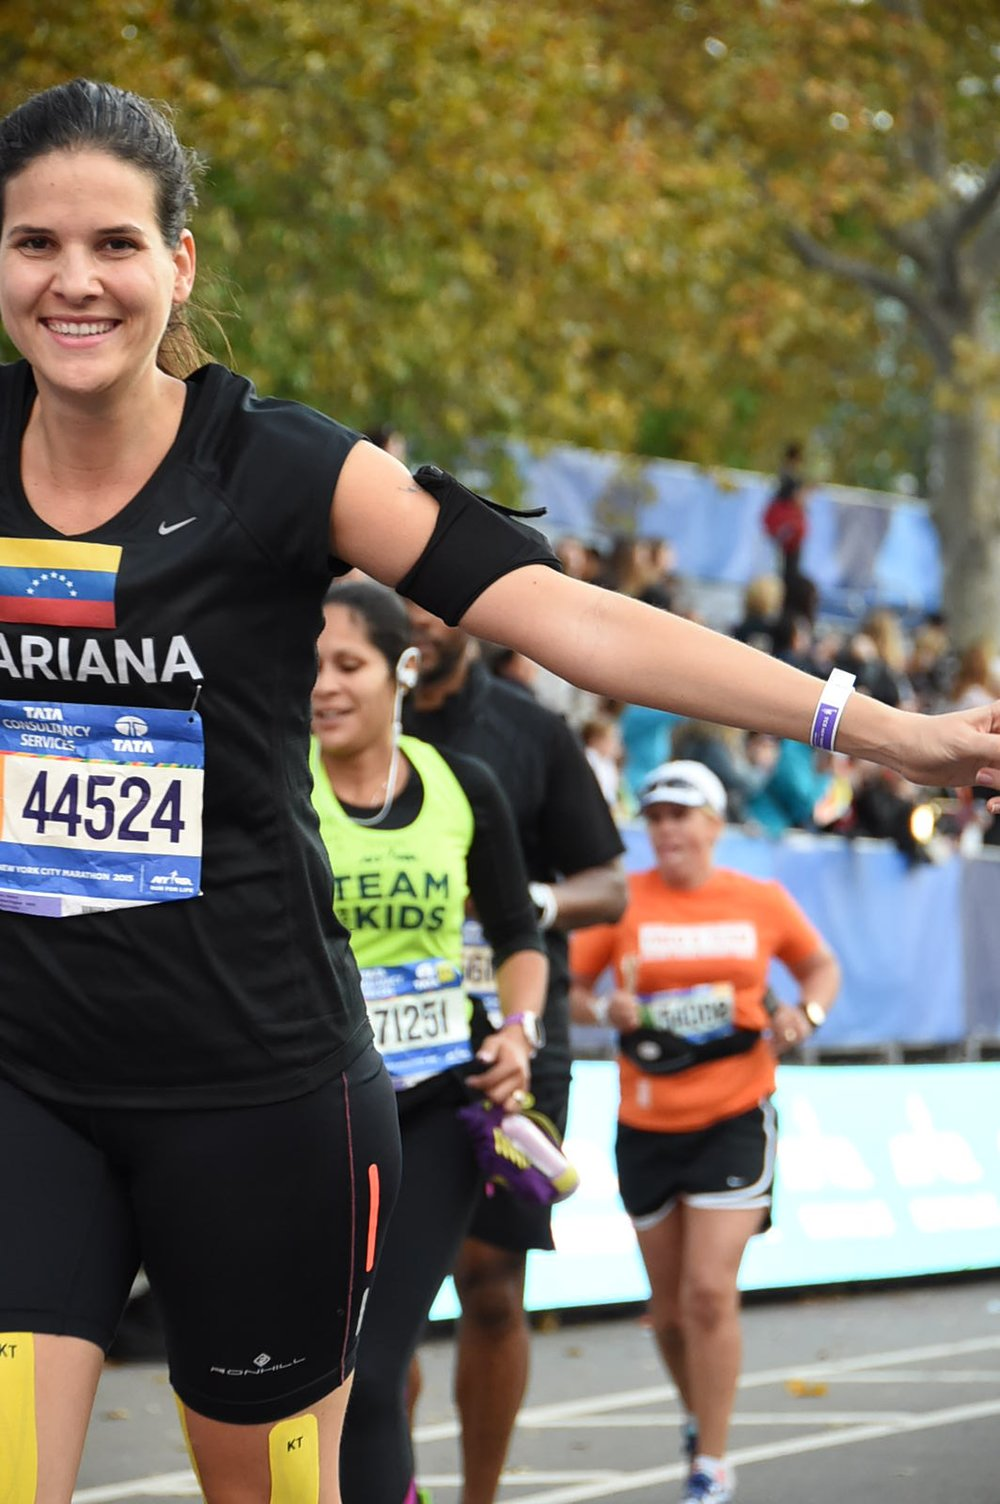 Olivia and I about to cross the finish line at the 2015 NYC marathon